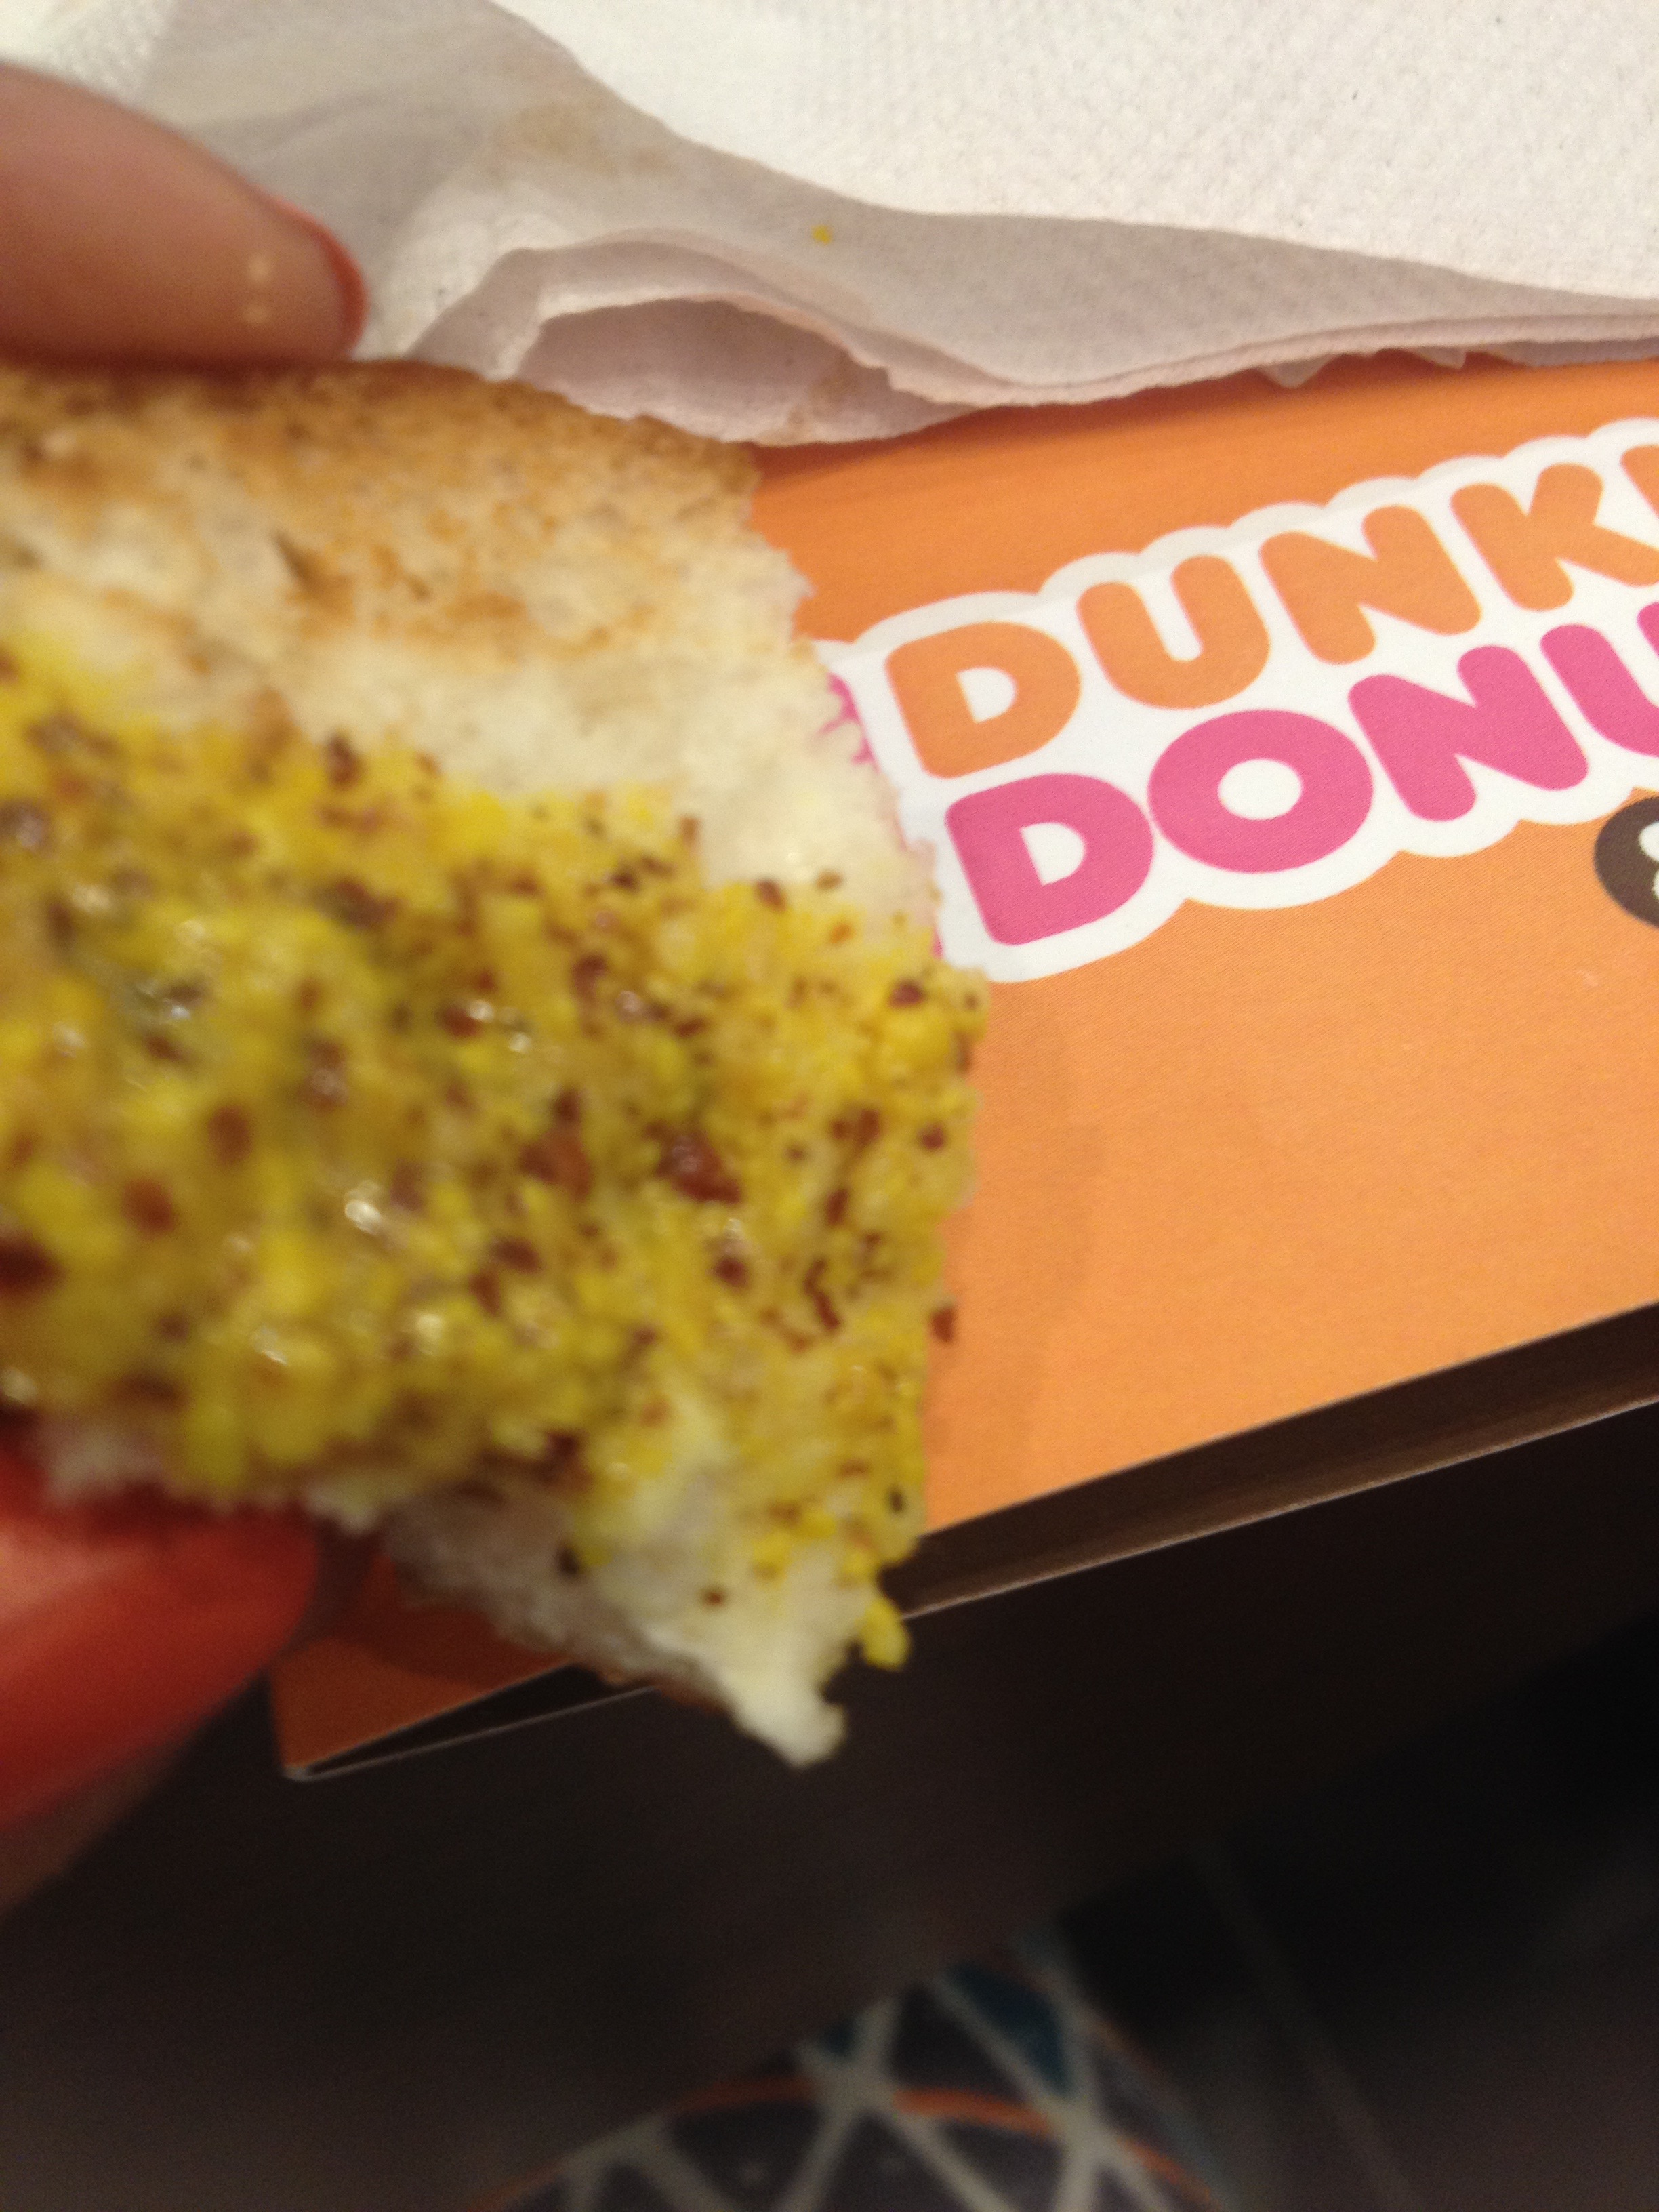 More At Dunkin' Donuts